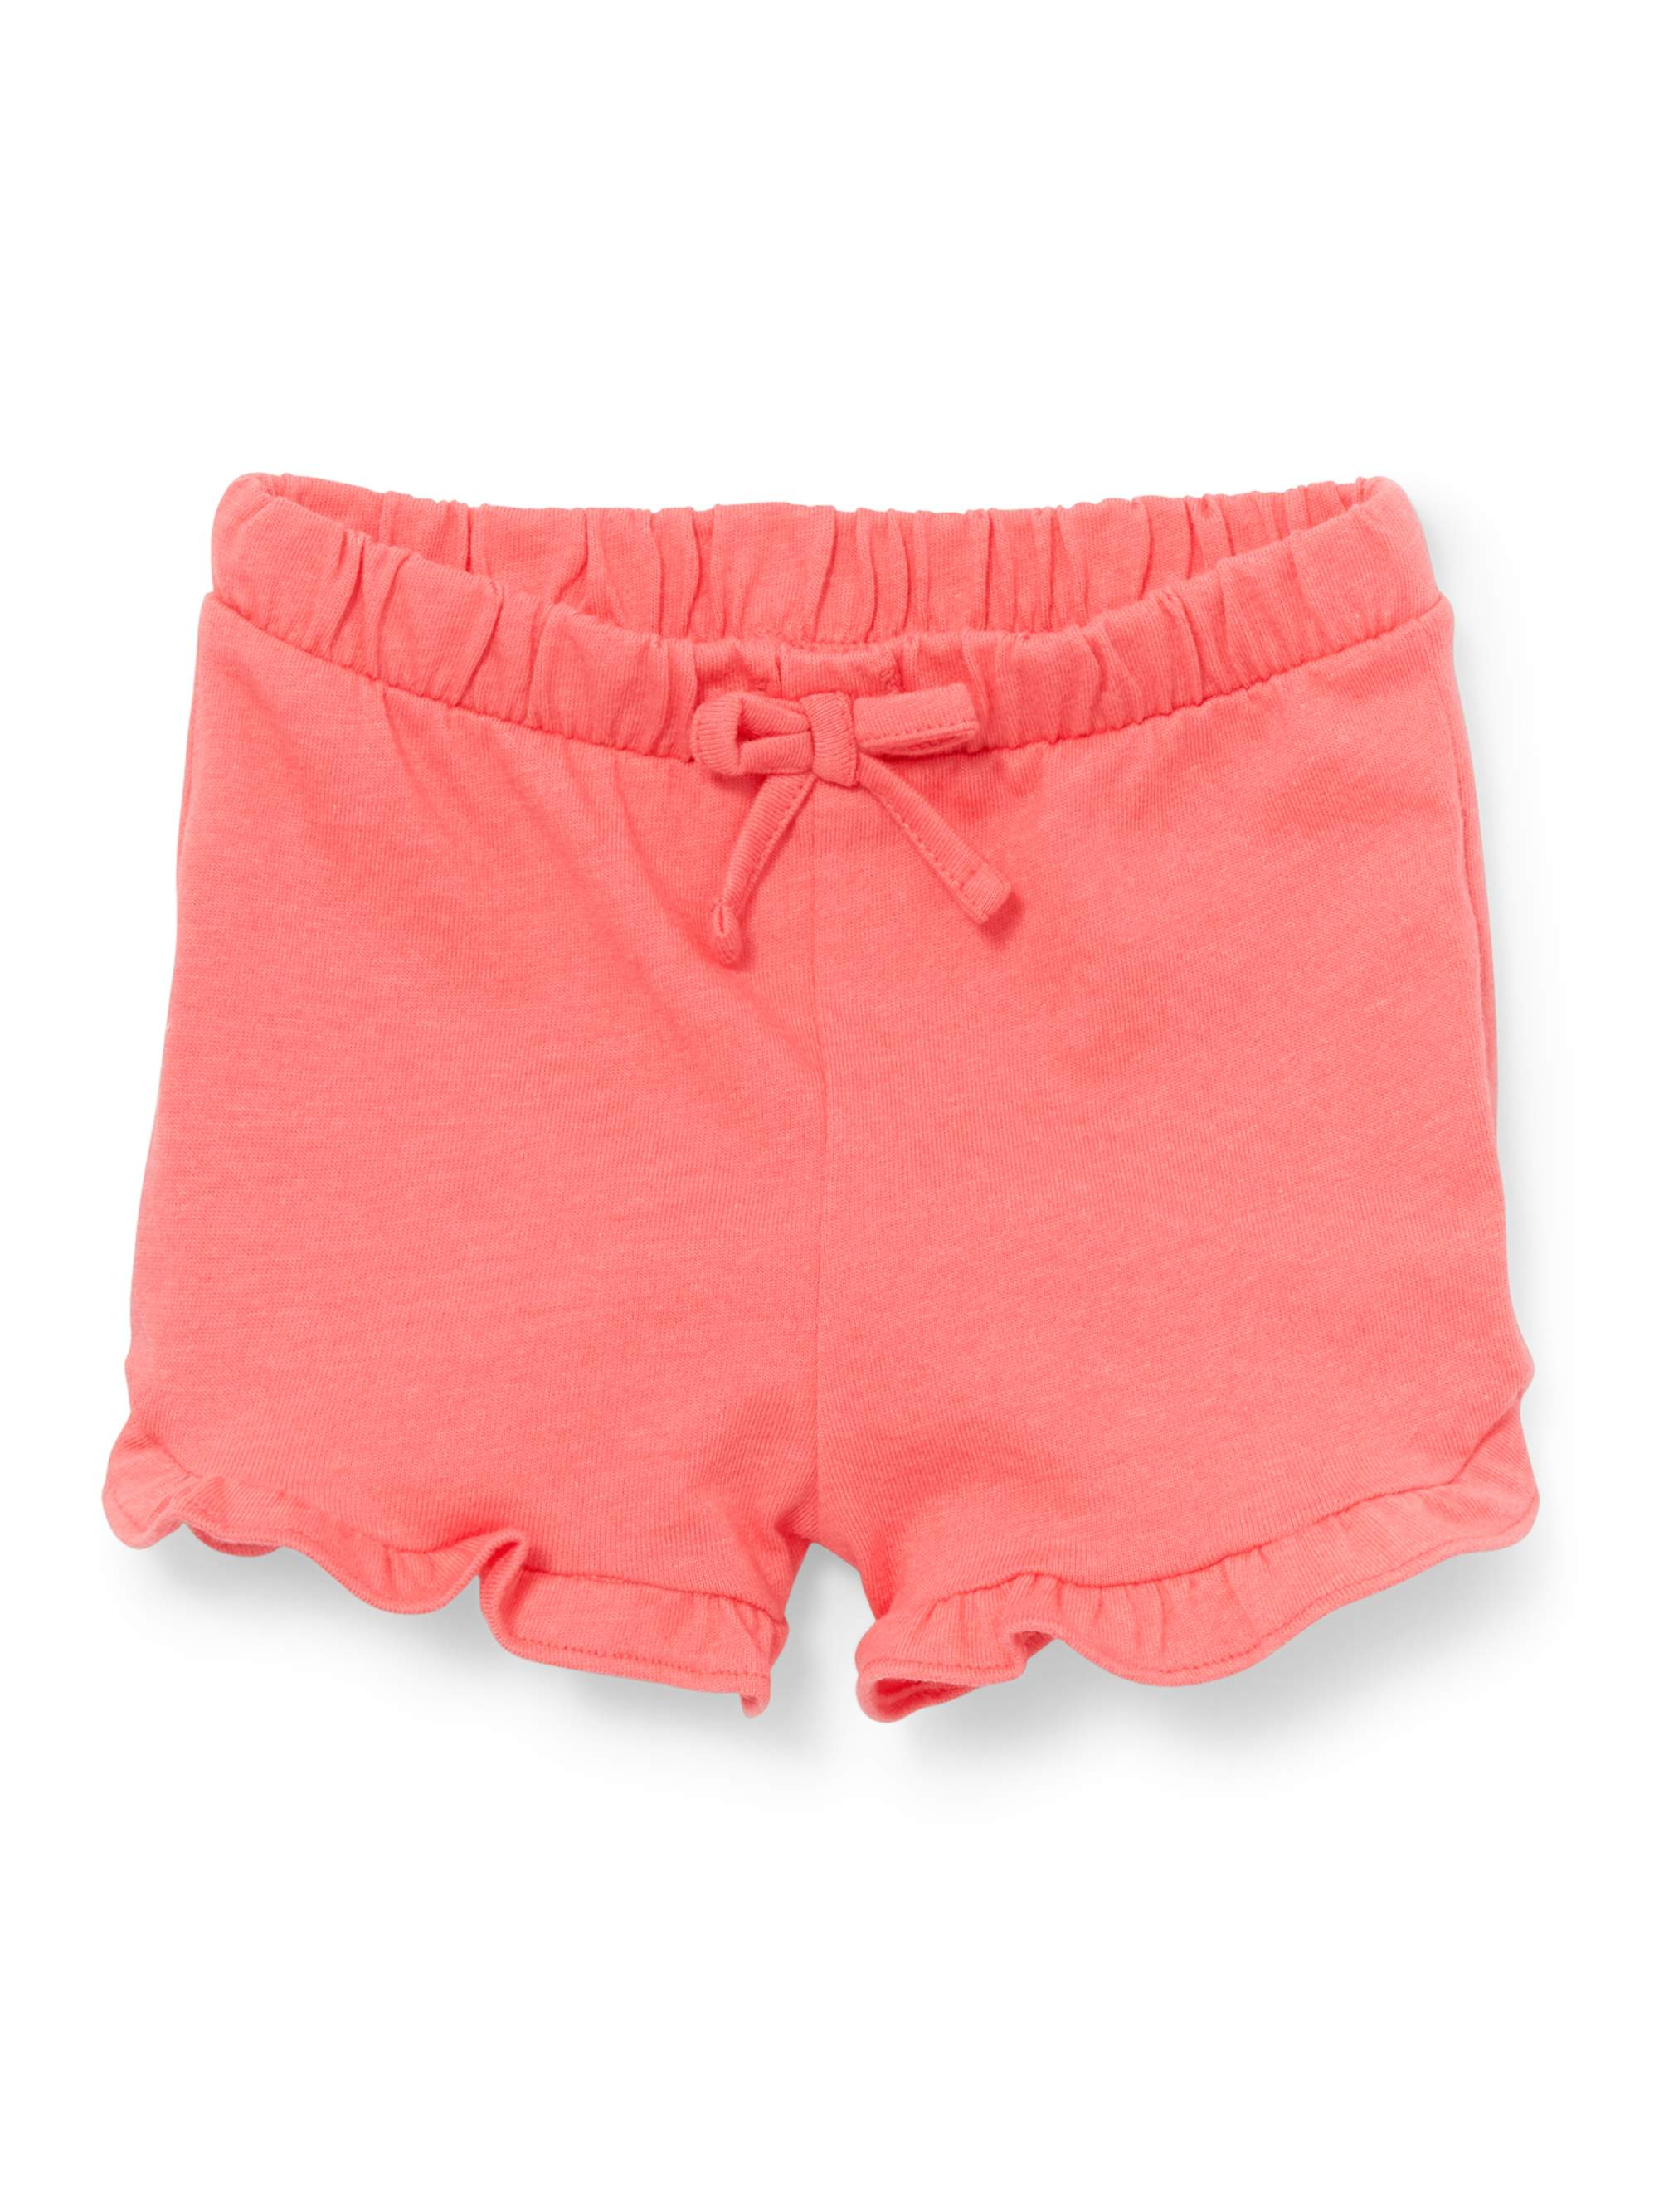 Children's Place Toddler Girls' Ruffle Trim Shorts